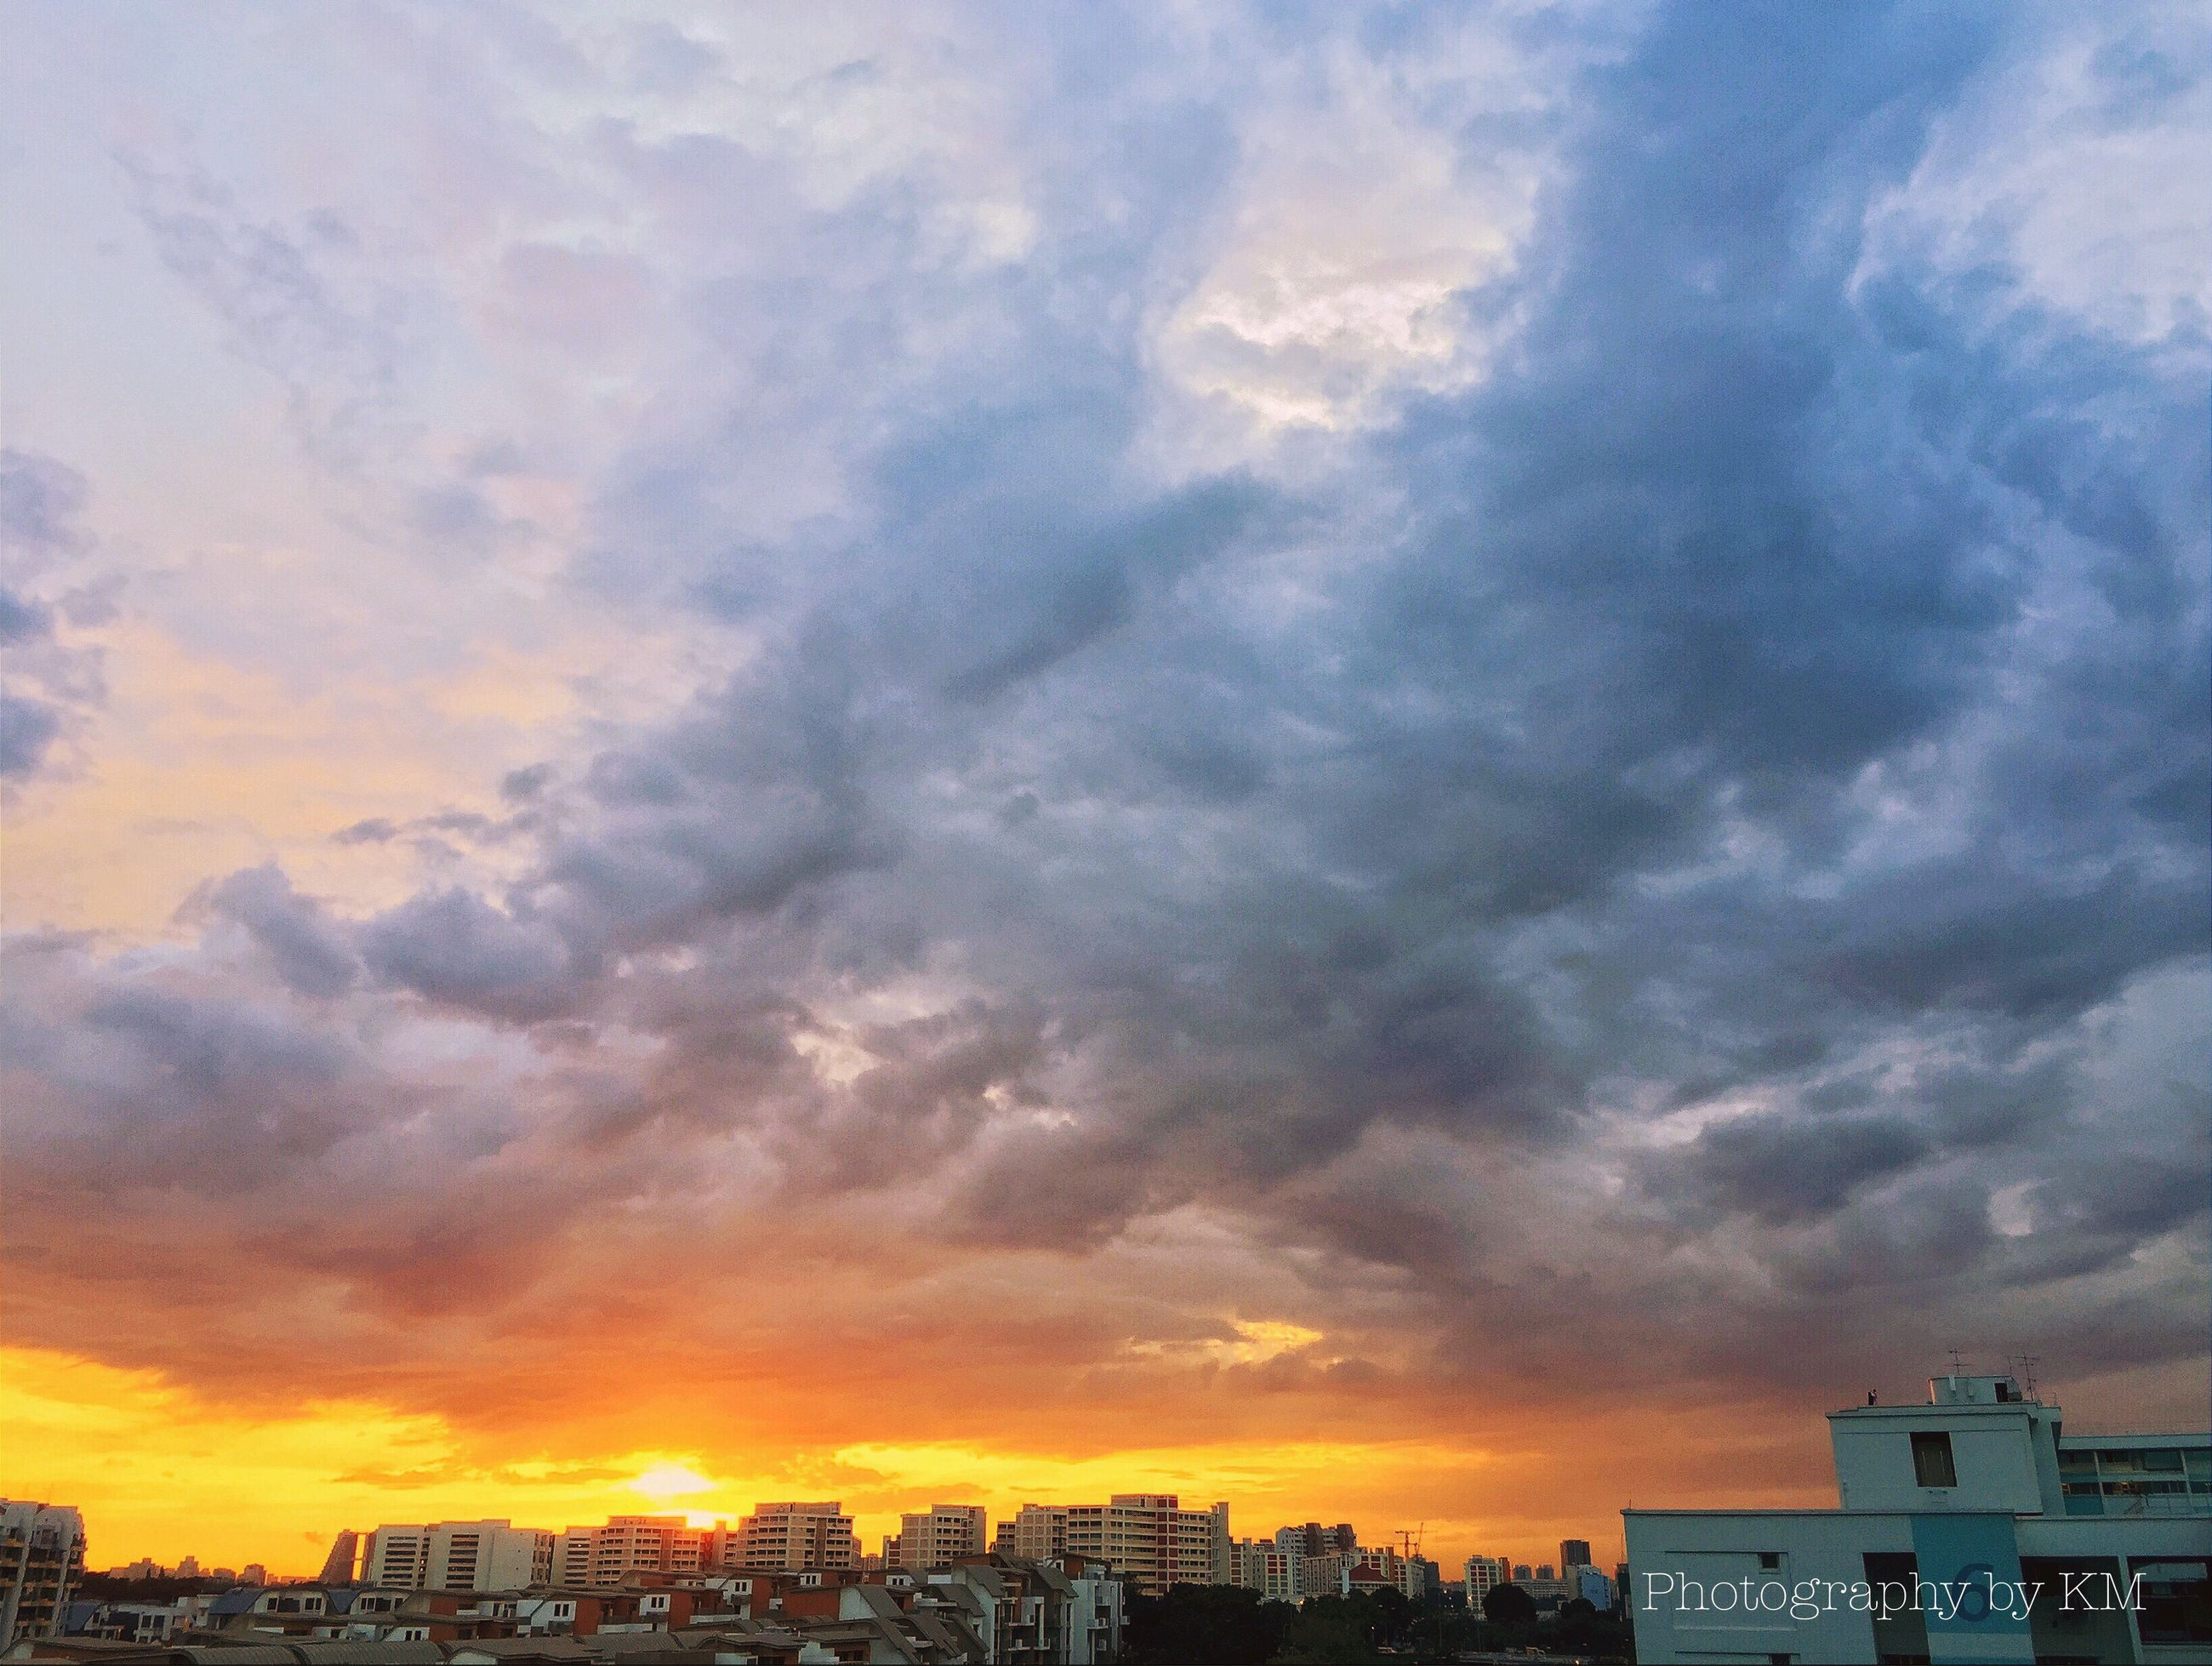 sunset, building exterior, architecture, built structure, sky, cloud - sky, city, orange color, cityscape, cloudy, dramatic sky, weather, residential building, silhouette, beauty in nature, residential structure, scenics, overcast, cloud, residential district